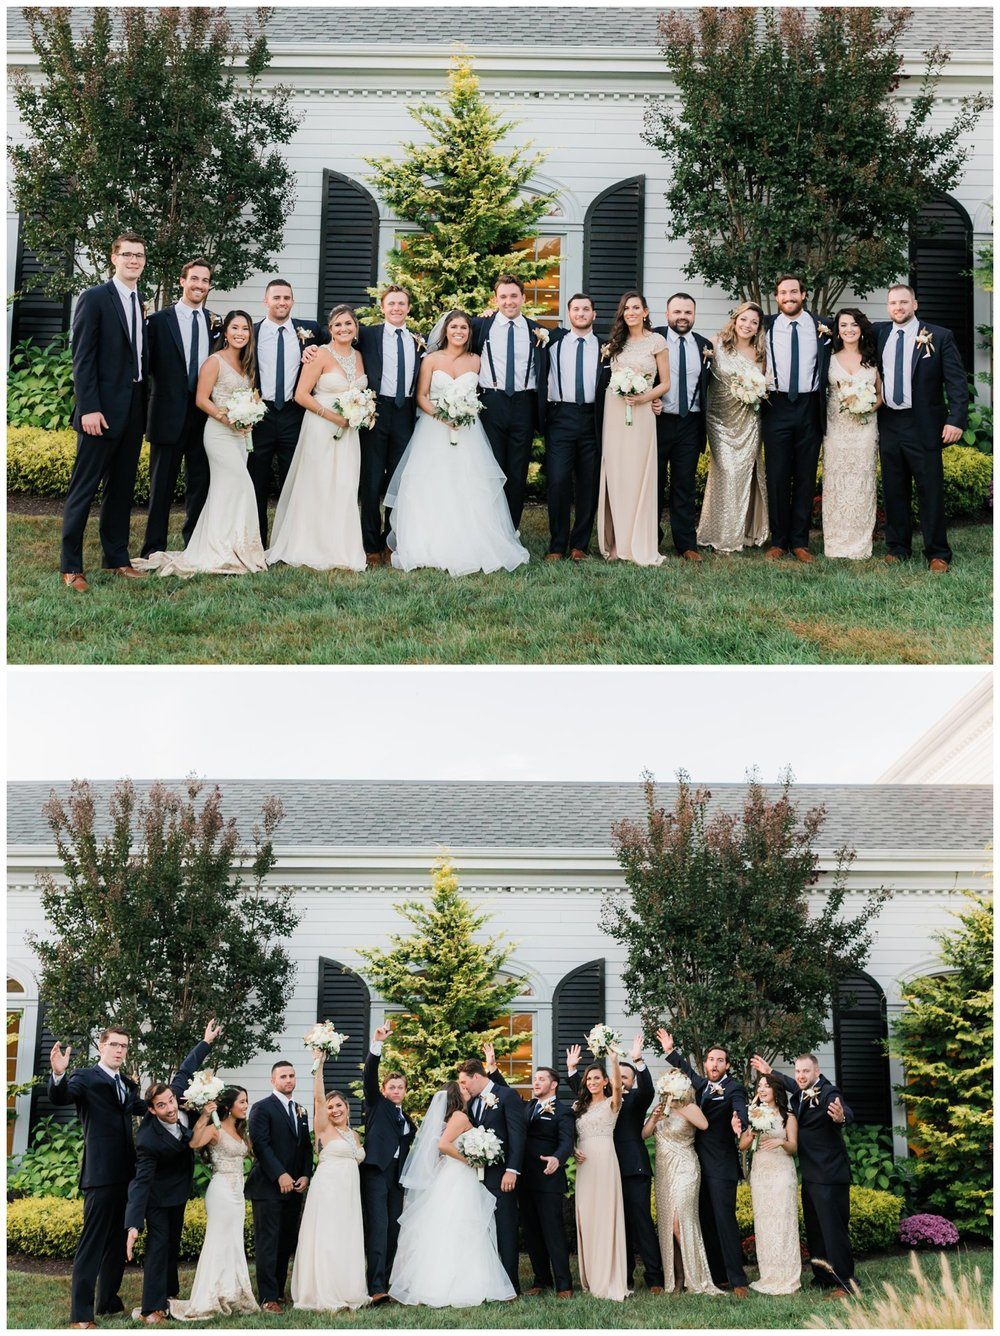 JenandEd_NewJerseyWedding_CarriageHouse_Galloway_NJ__SouthJersey_Wedding_Photographer_MagdalenaStudios_0269.jpg